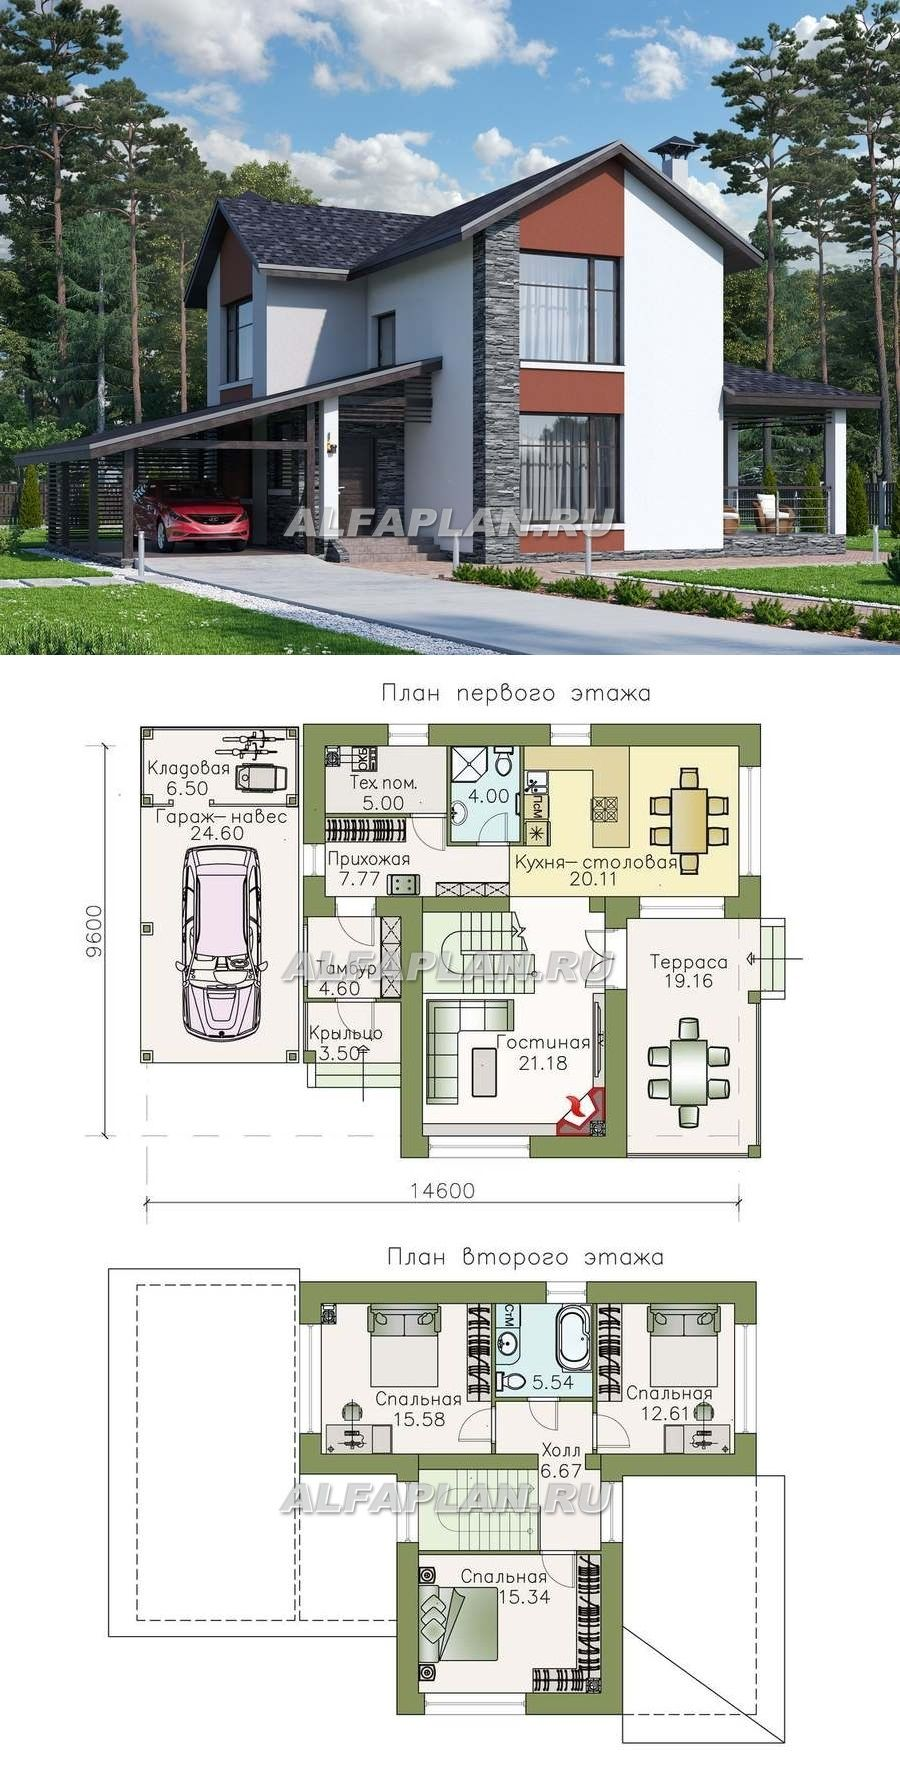 alfaplan also minimalist houses design have big open locations along with rh pinterest